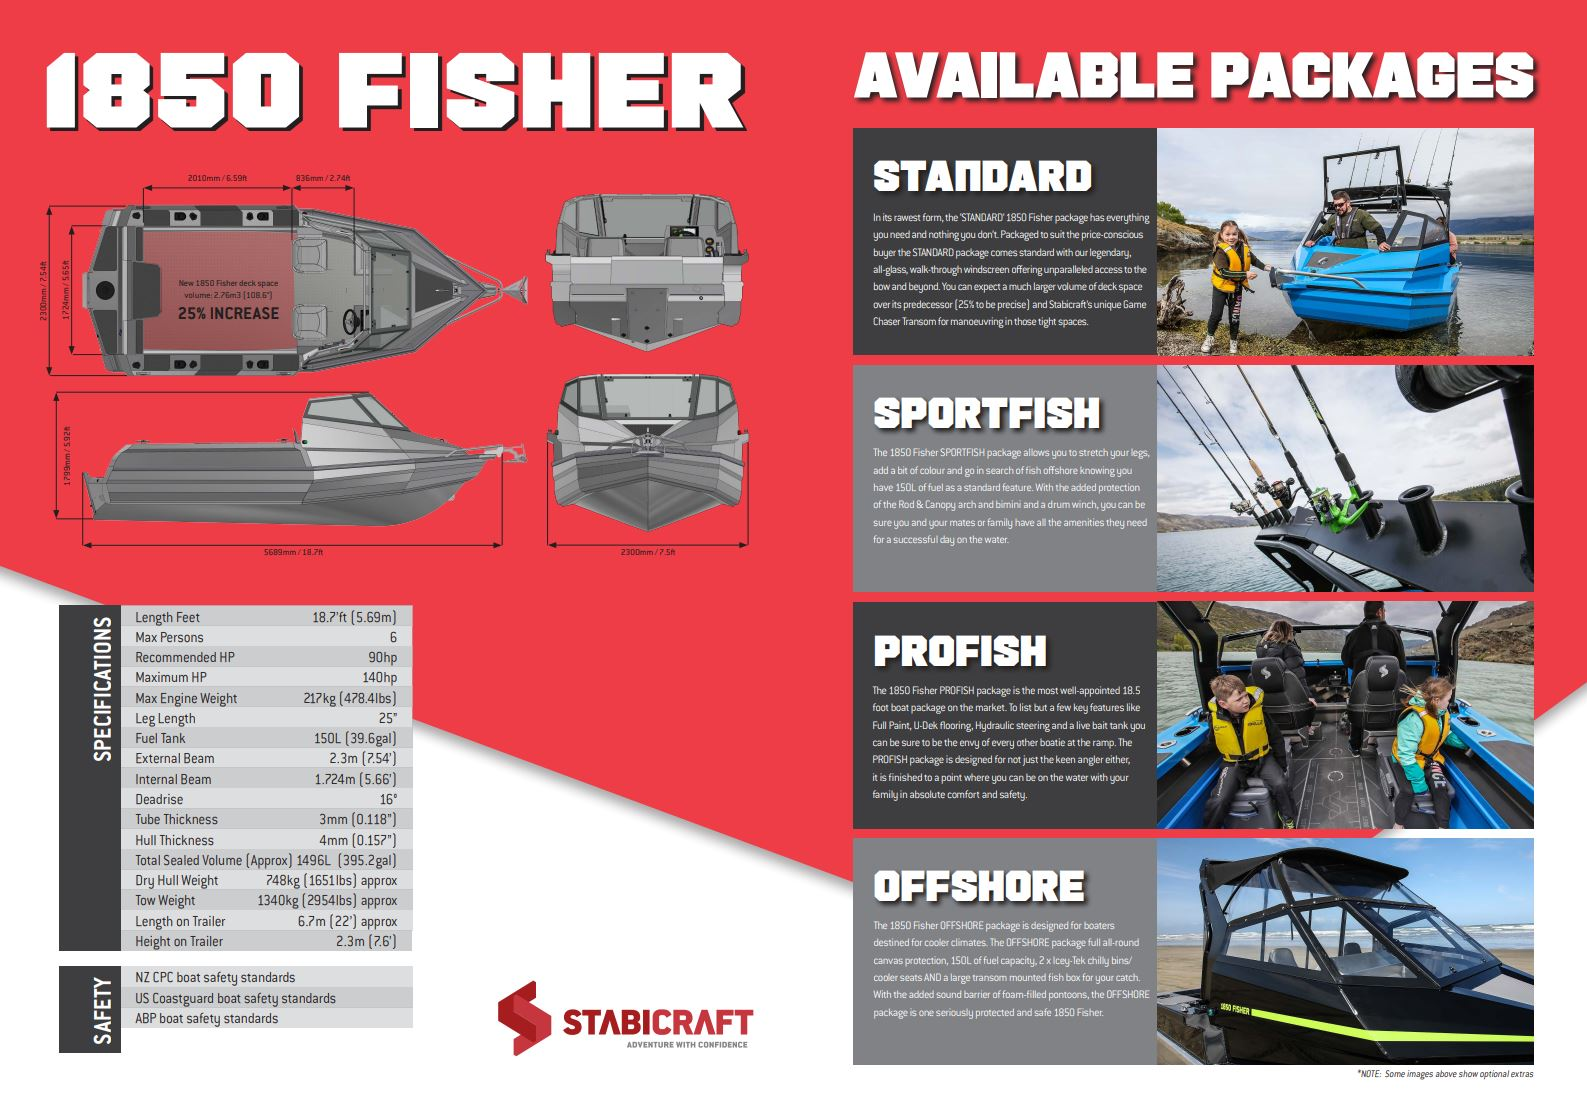 Stabicraft 1850 Fisher